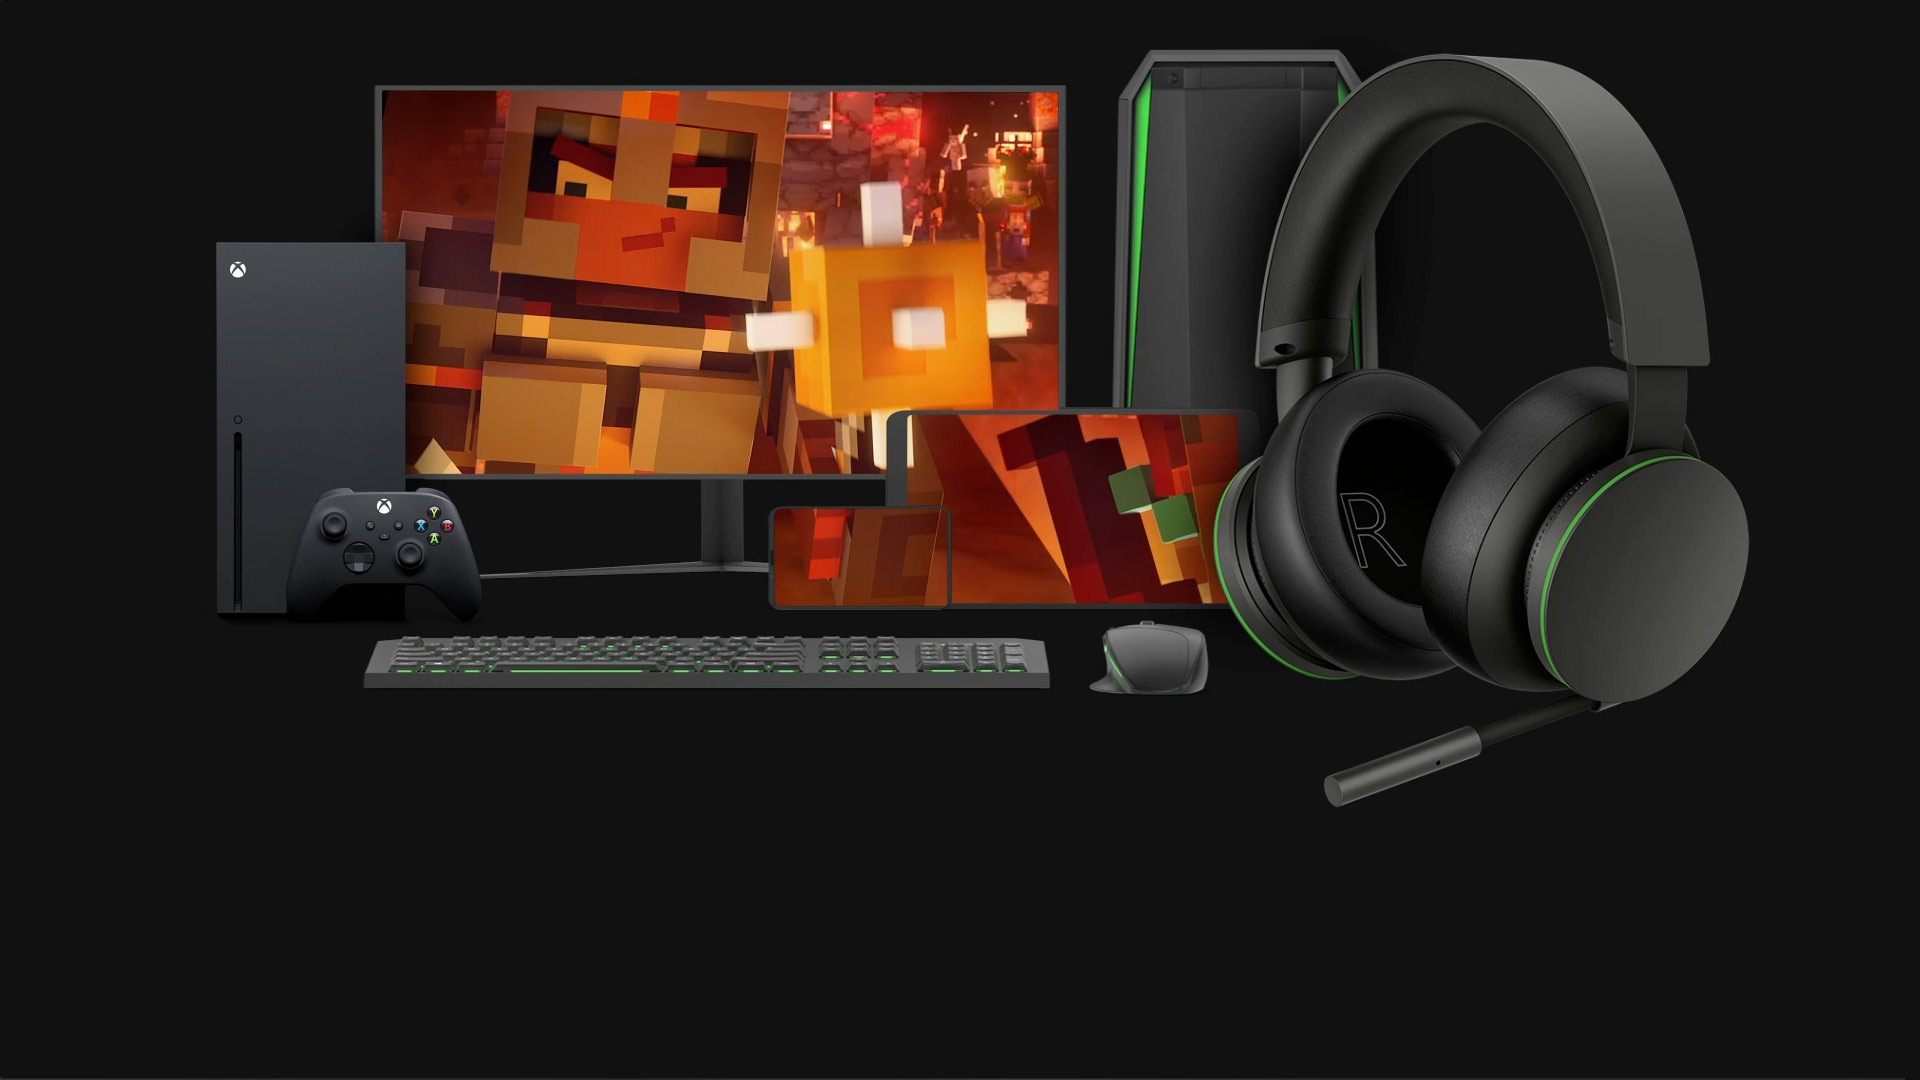 The Xbox Stereo Headset sits in front of a selection of devices it is compatible with, including the Xbox Series X, Windows 10 PC, and a mobile device.